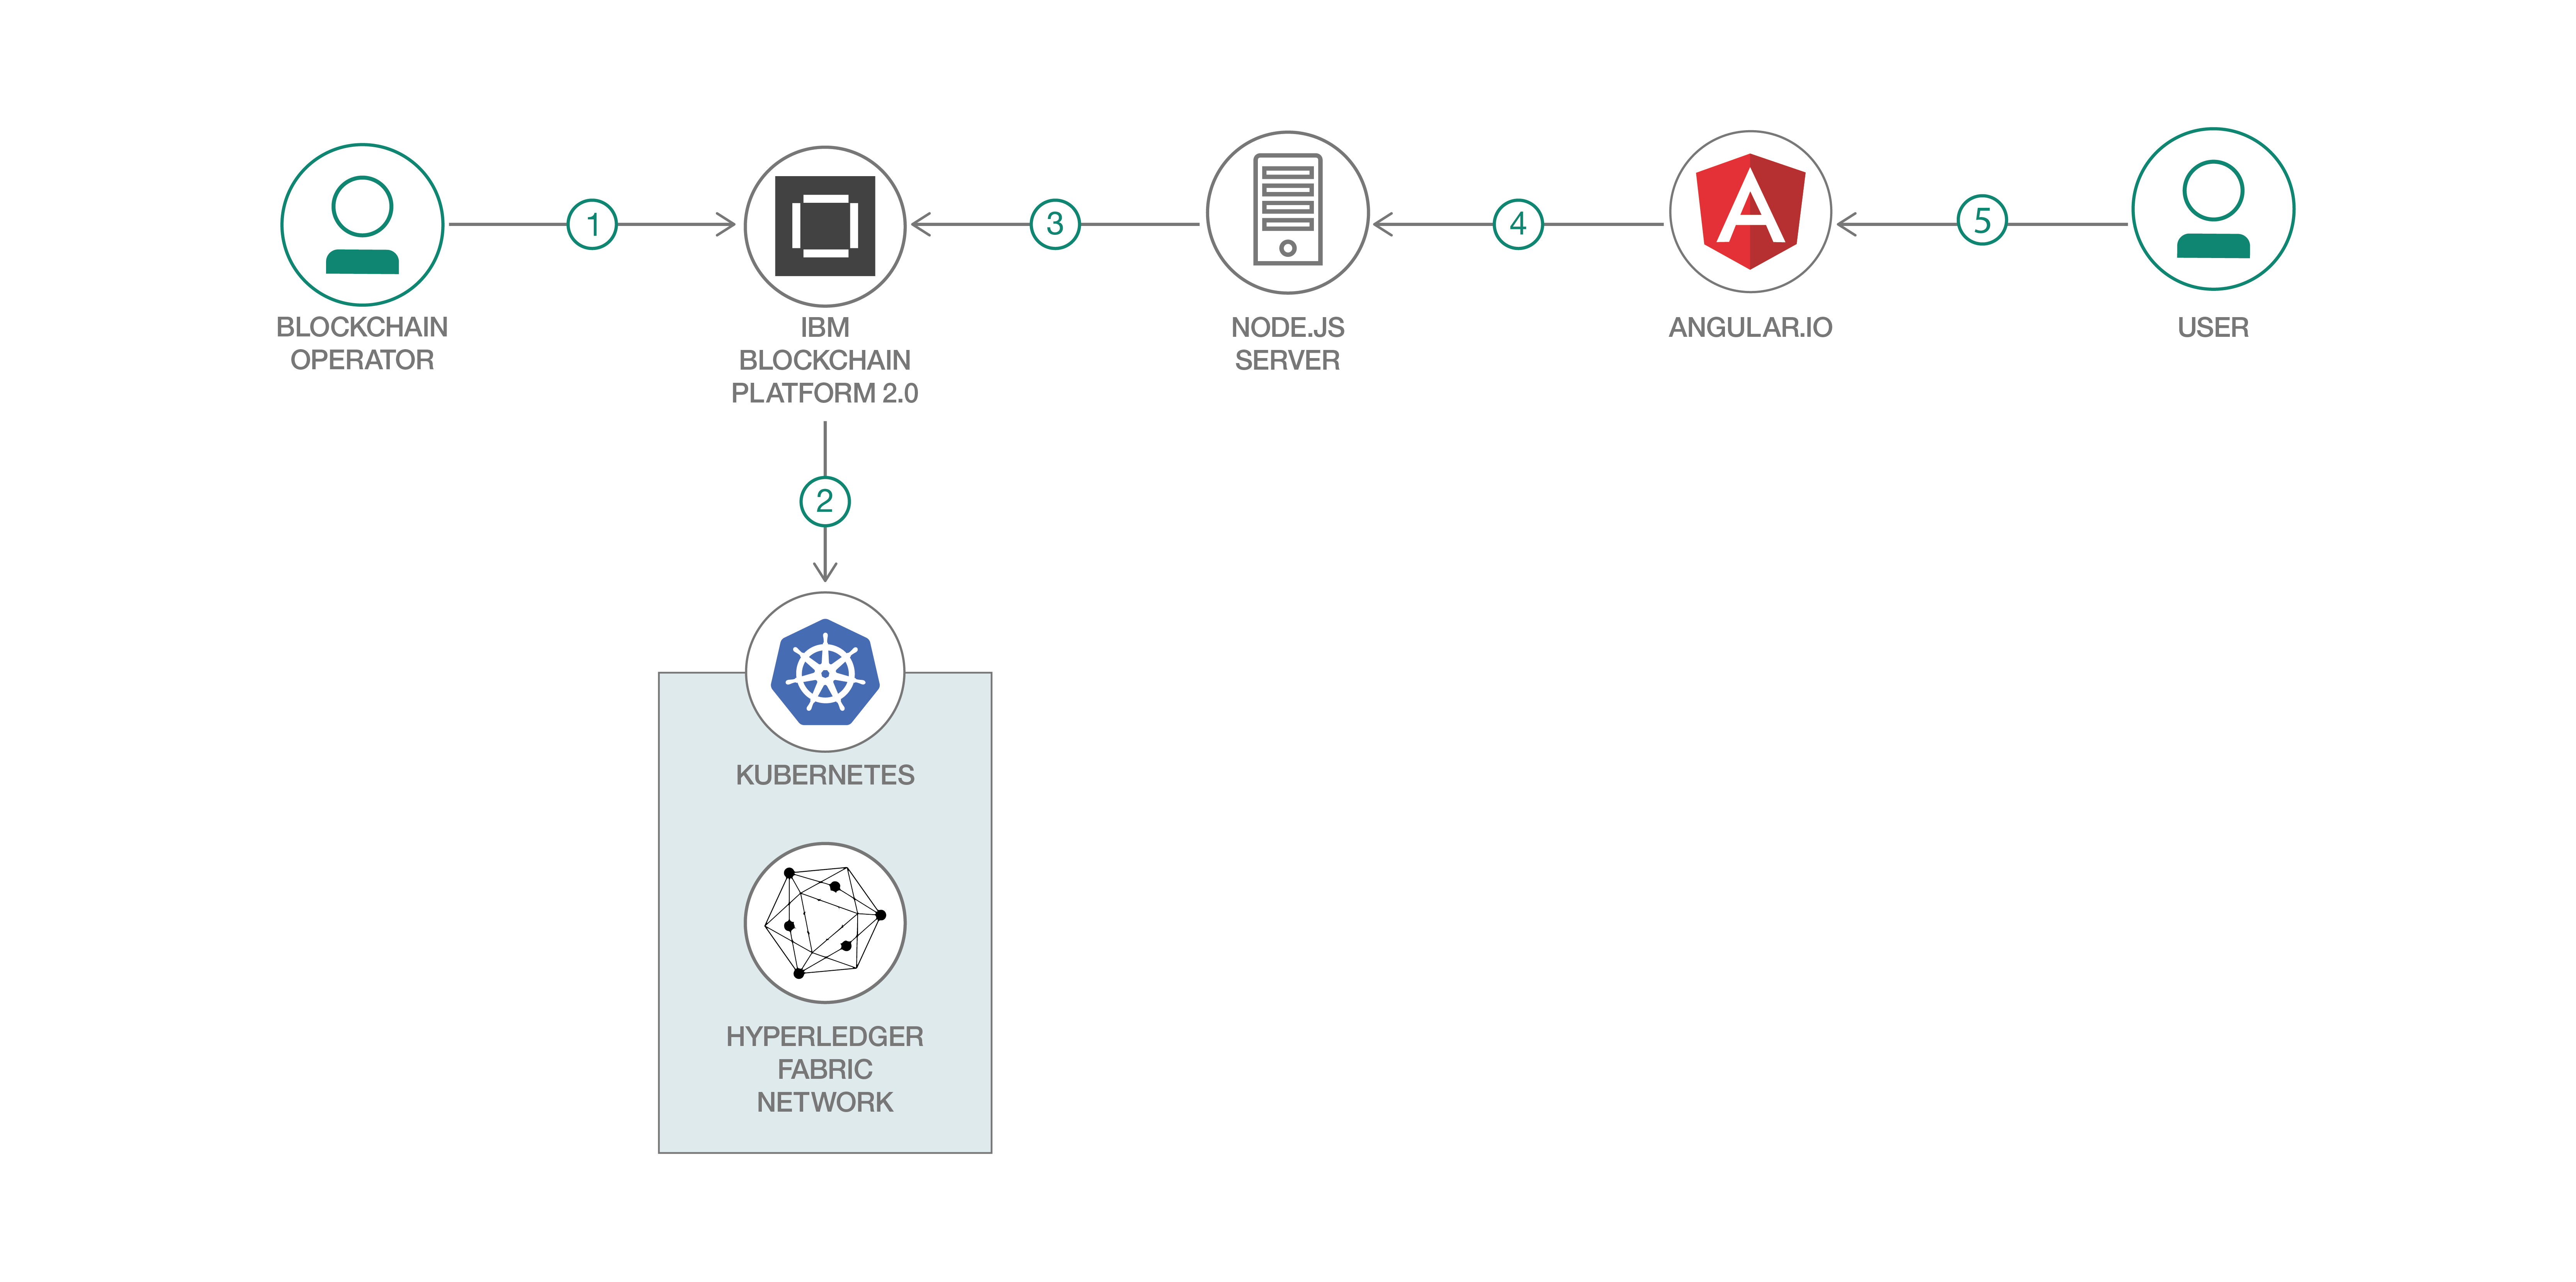 Use a Kubernetes cluster to deploy a Fabric network smart